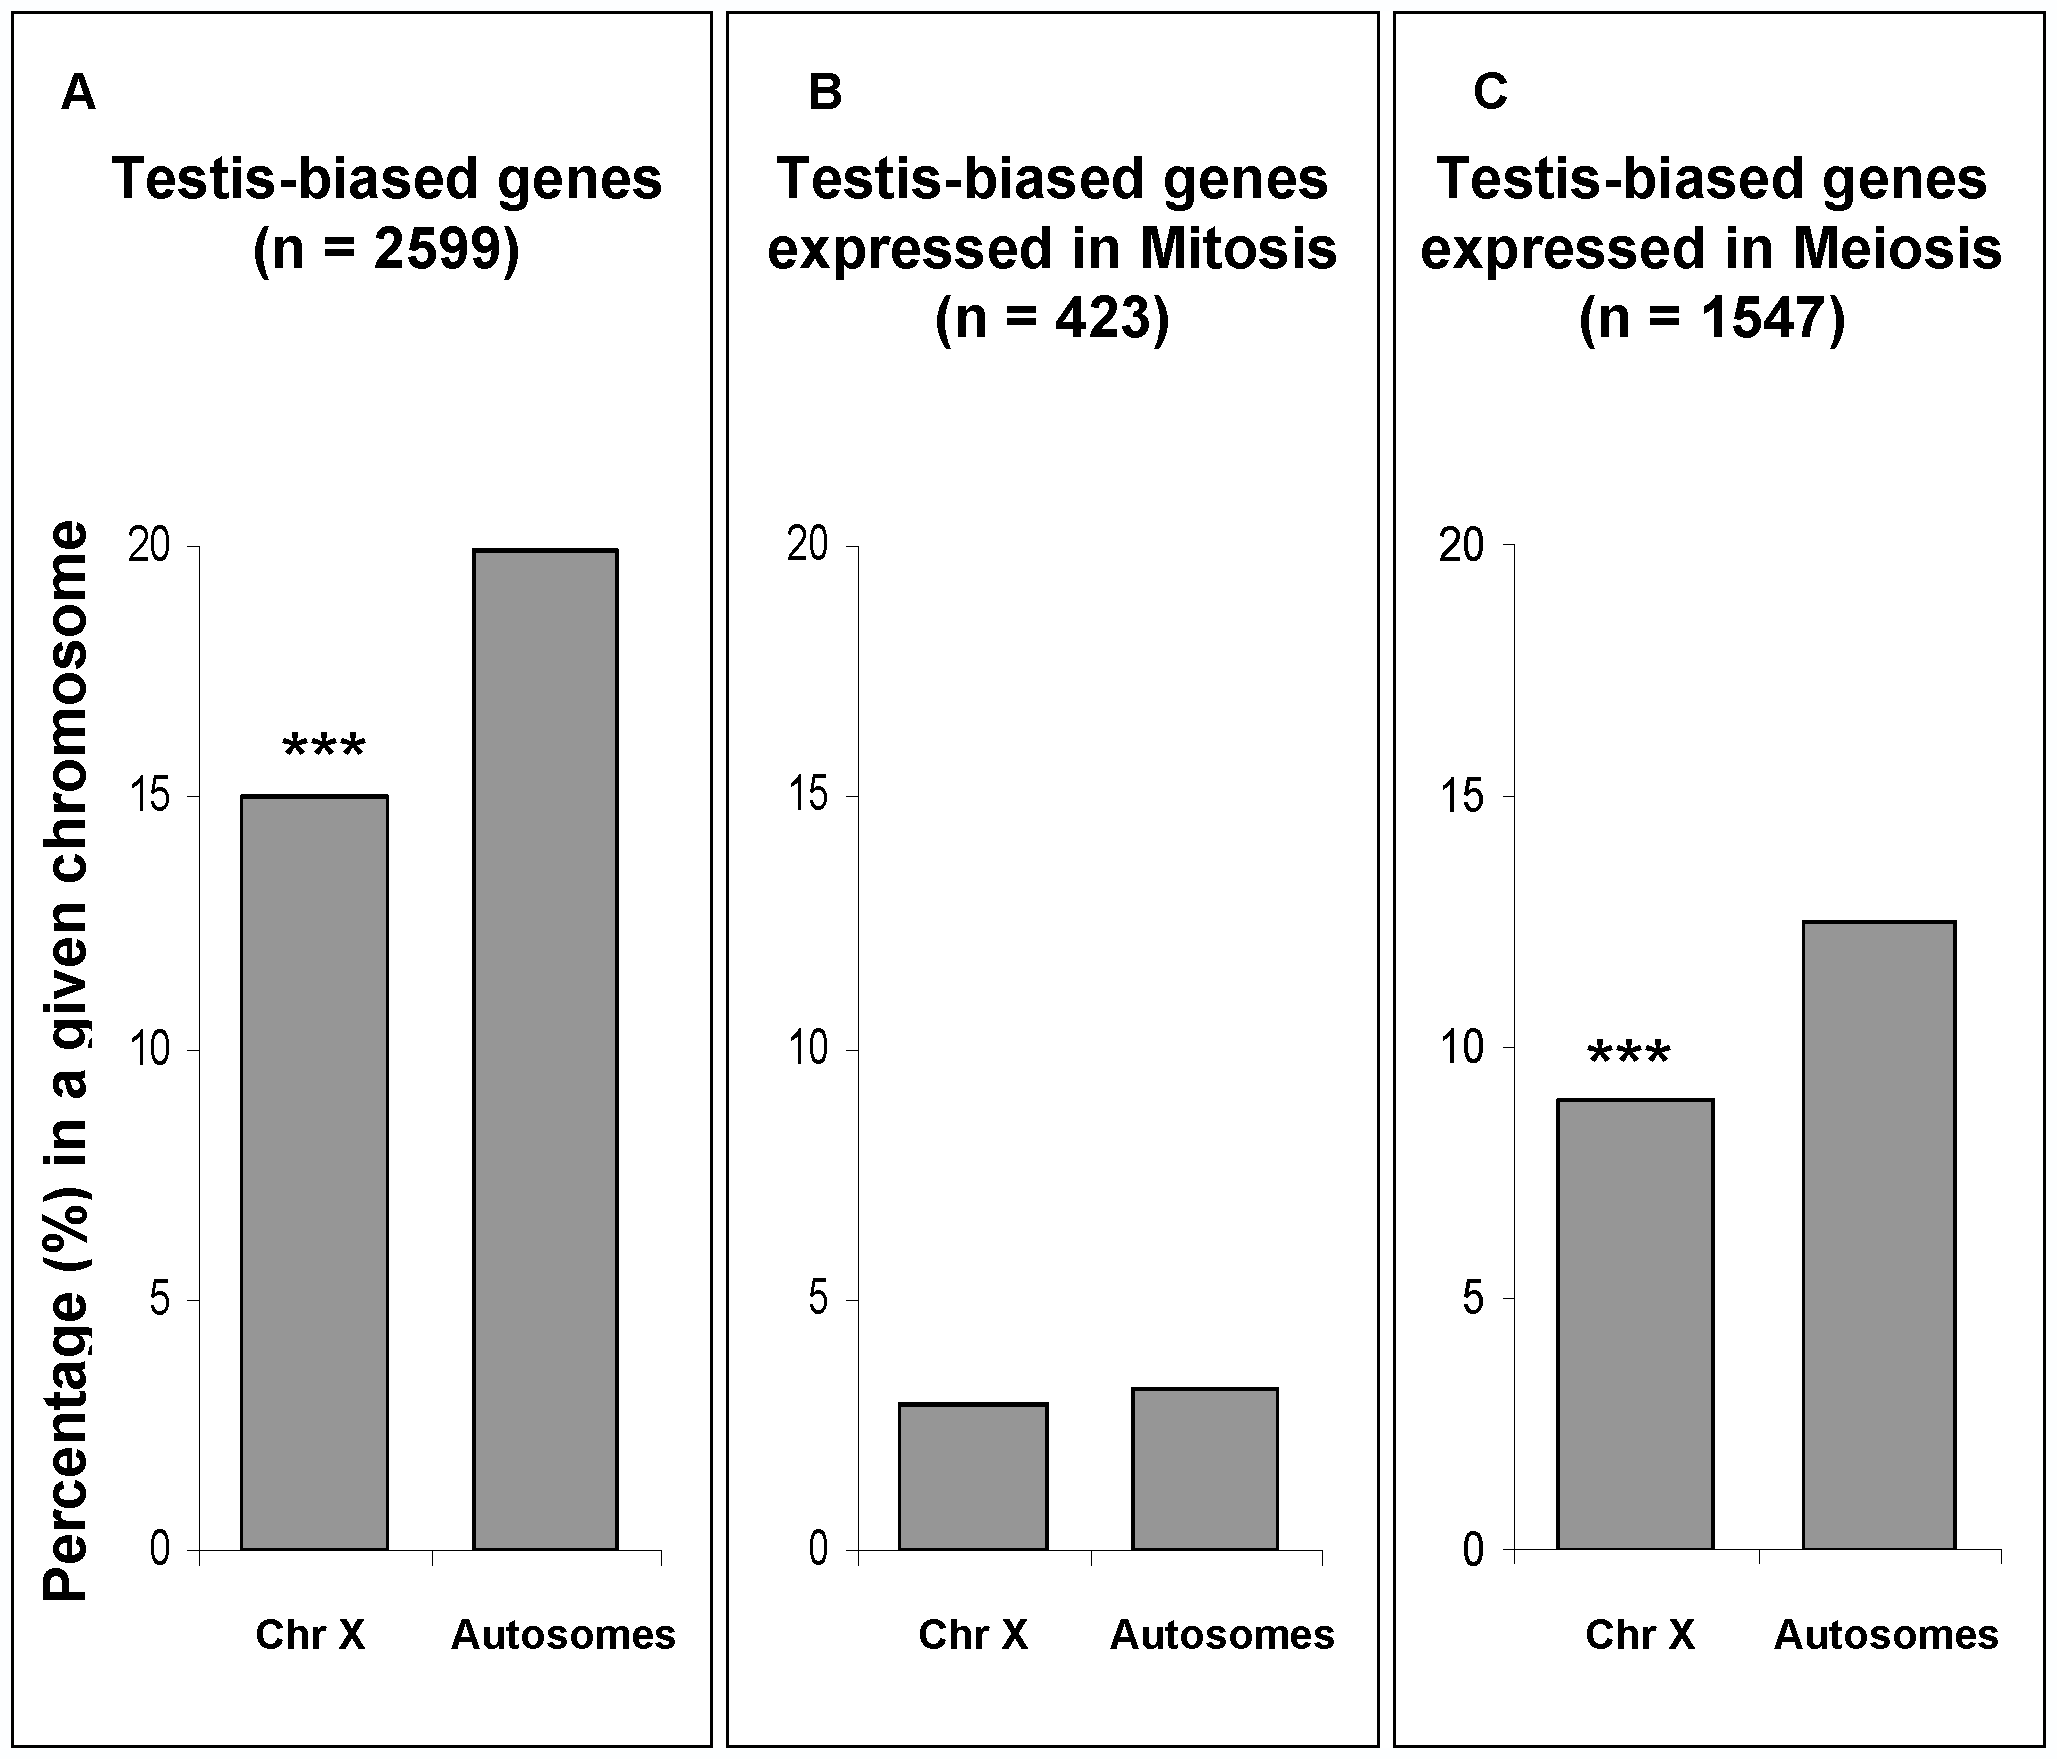 Chromosomal percentages of testis-biased genes.